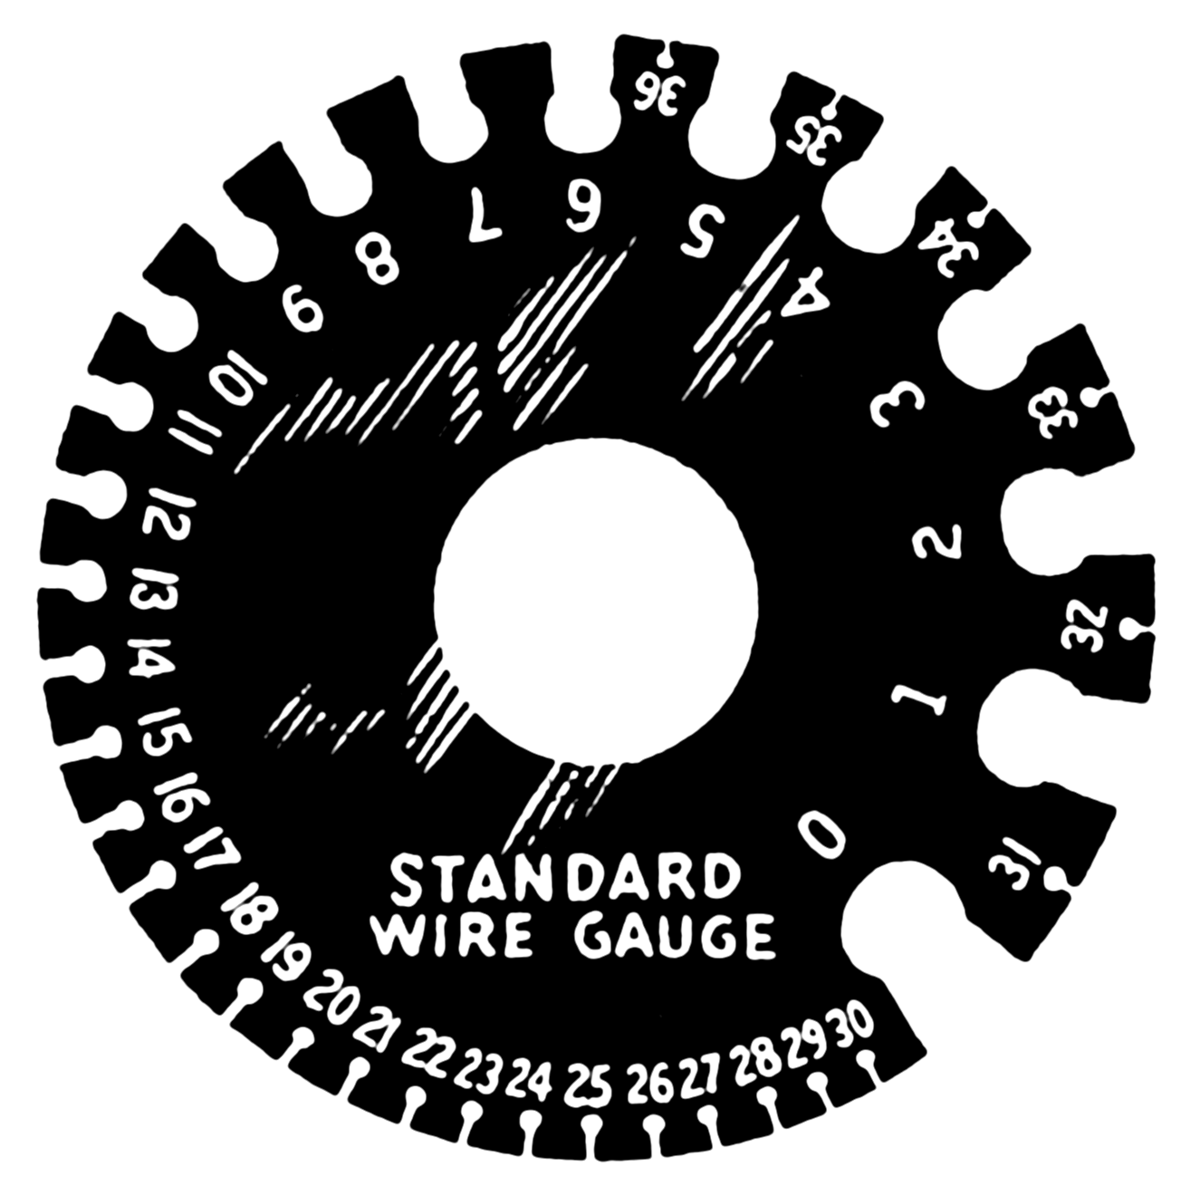 Standard wire gauge wikipedia keyboard keysfo Choice Image